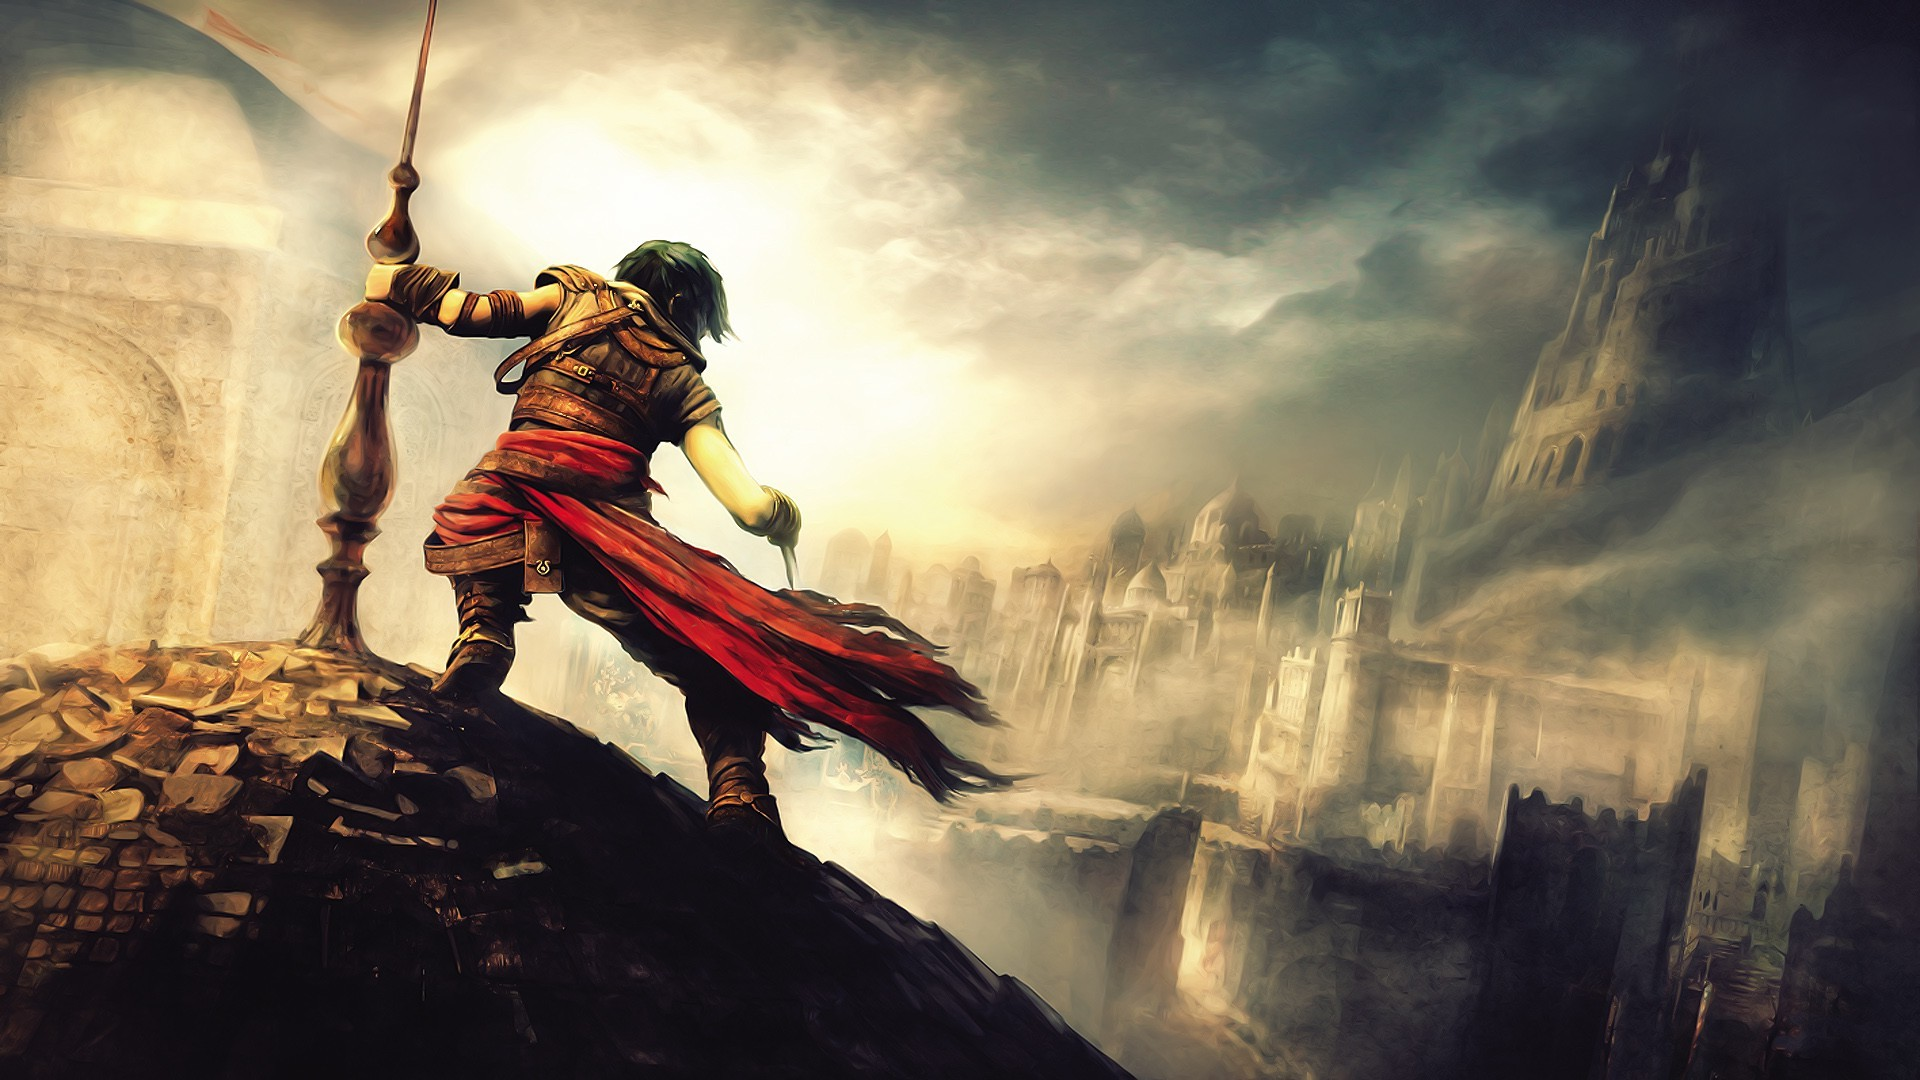 prince of persia warrior within wallpaper (57+ images)